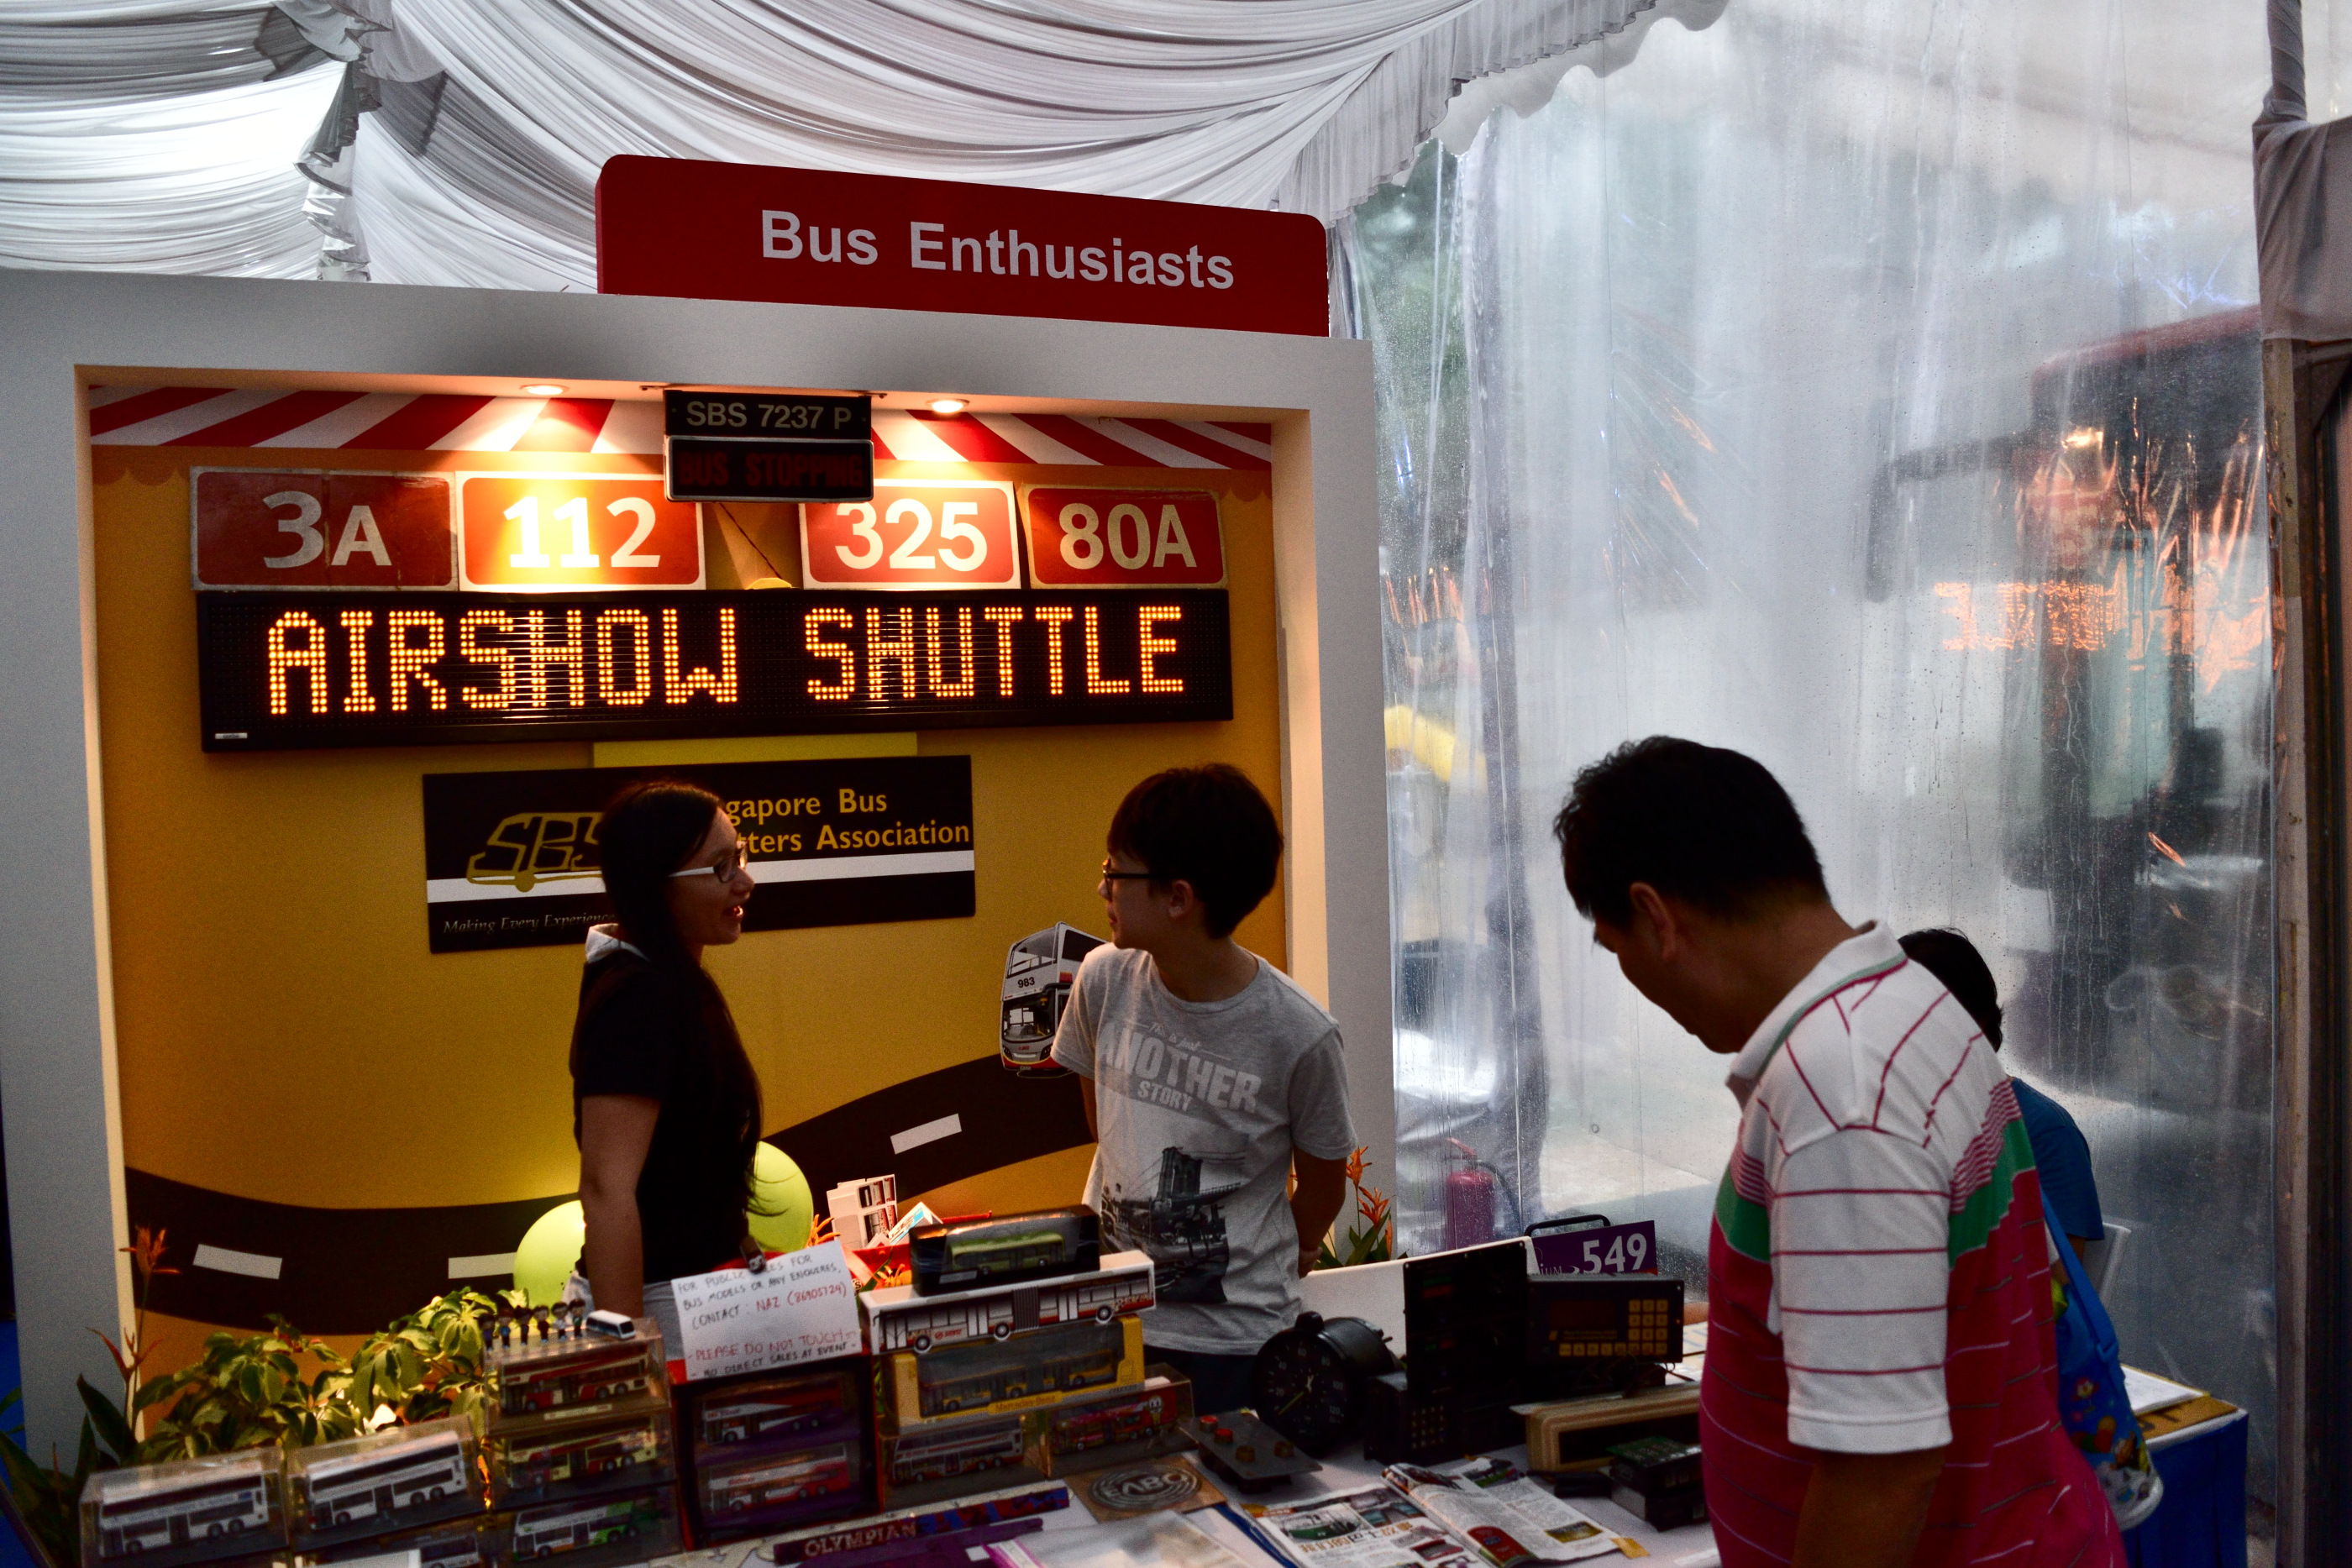 The bus enthusiasts' booth